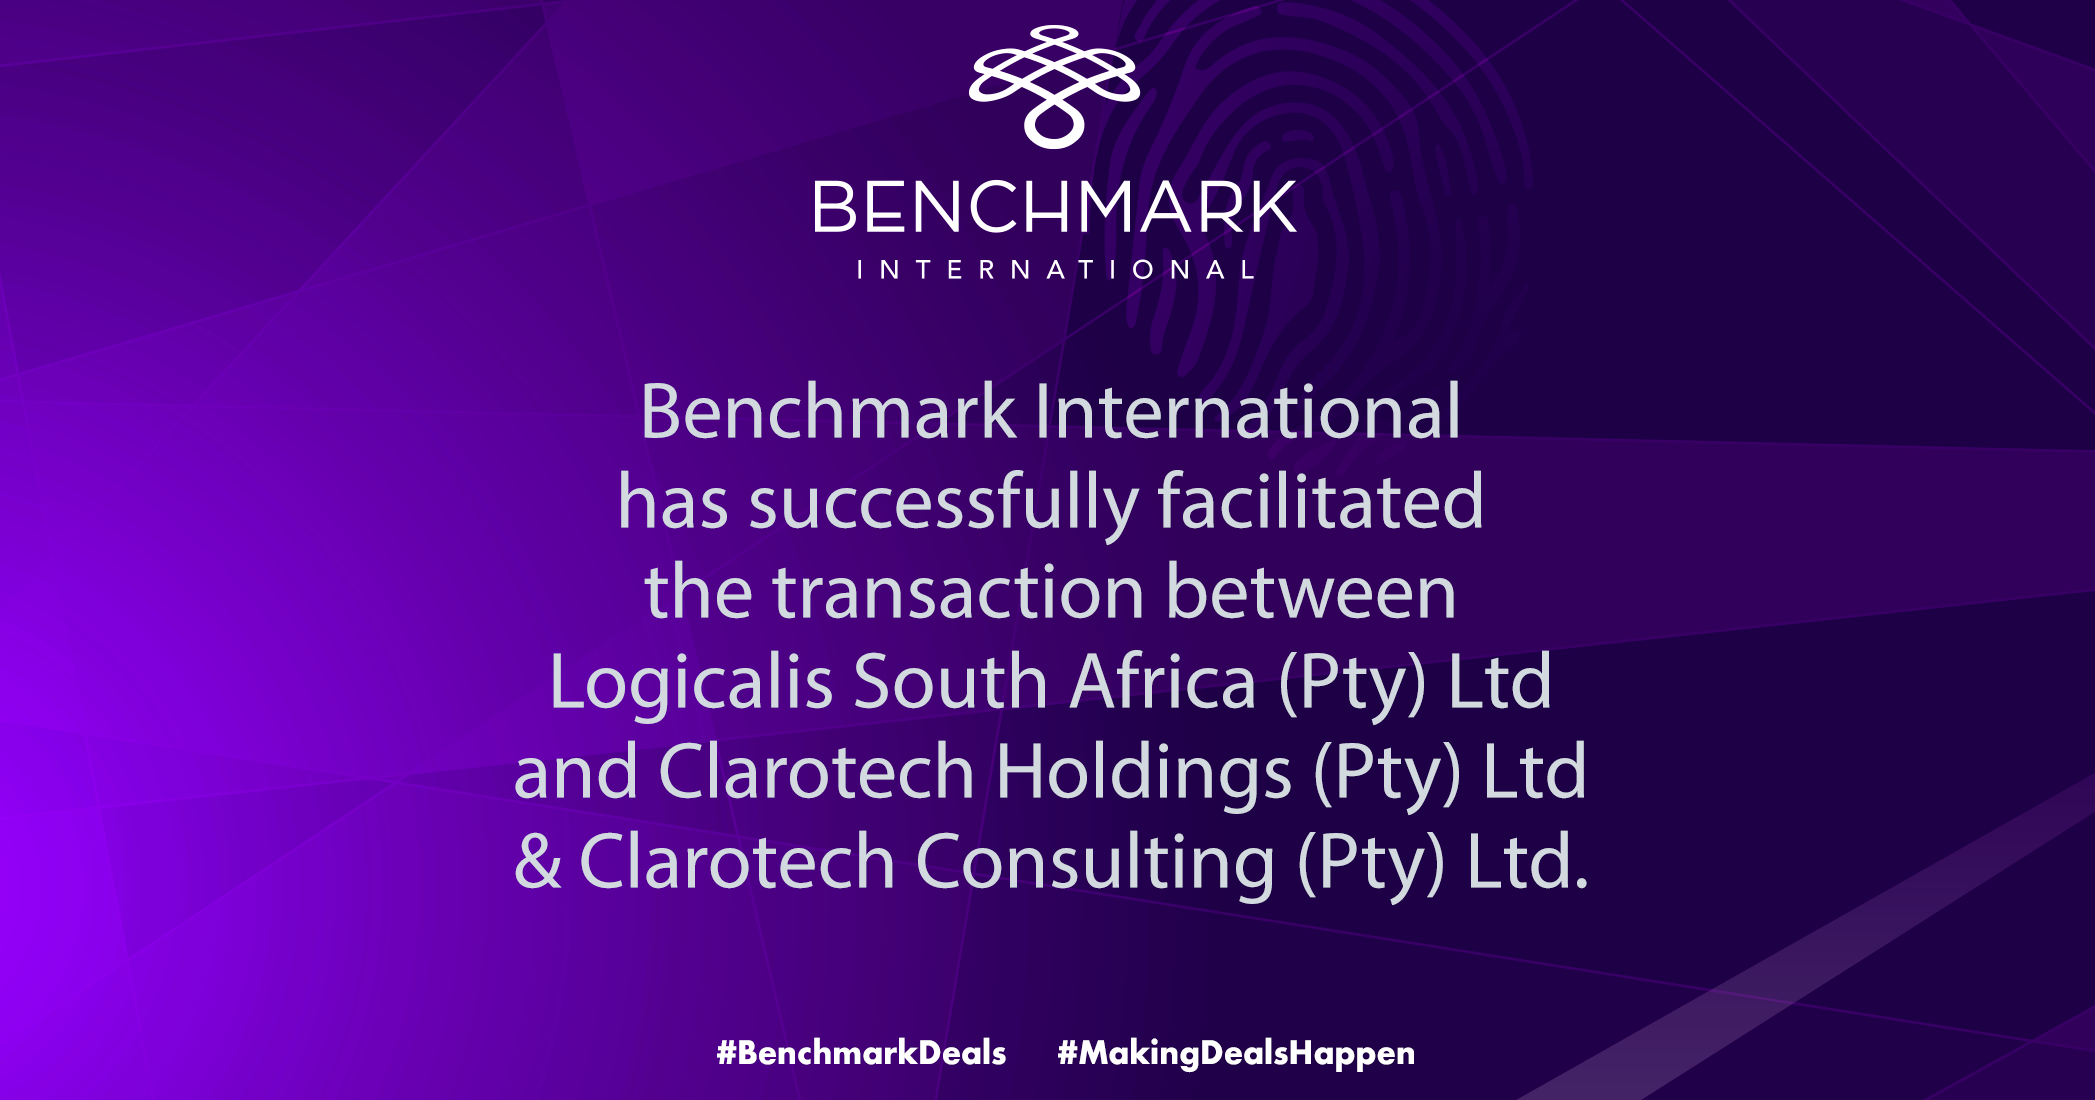 Benchmark International has successfully facilitated the transaction between Logicalis South Africa (Pty) Ltd and Clarotech Holdings (Pty) Ltd & Clarotech Consulting (Pty) Ltd.